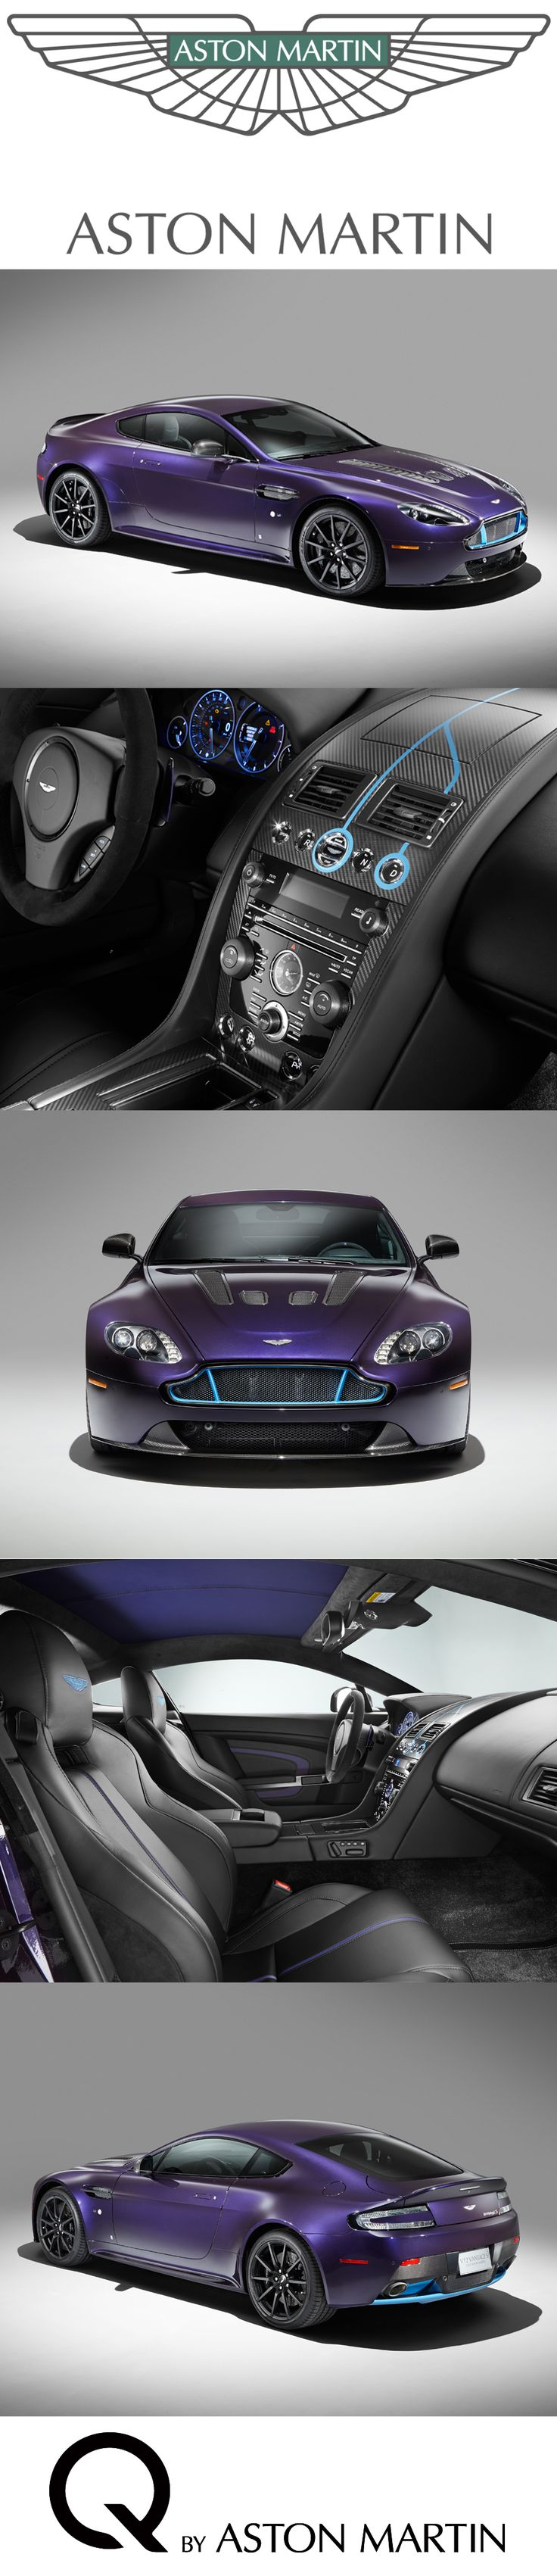 A bespoke commission to be showcased at Pebble Beach® Automotive Week 2014. This V12 Vantage S adopts a unique example of the colour and trim freedom offered through the Q service with its rich purple amethyst exterior paint punctuated with bright painted Monterey Pearl front grille and rear diffuser. Discover: http://www.astonmartin.com/en/q-by-aston-martin #AstonMartin #Cars